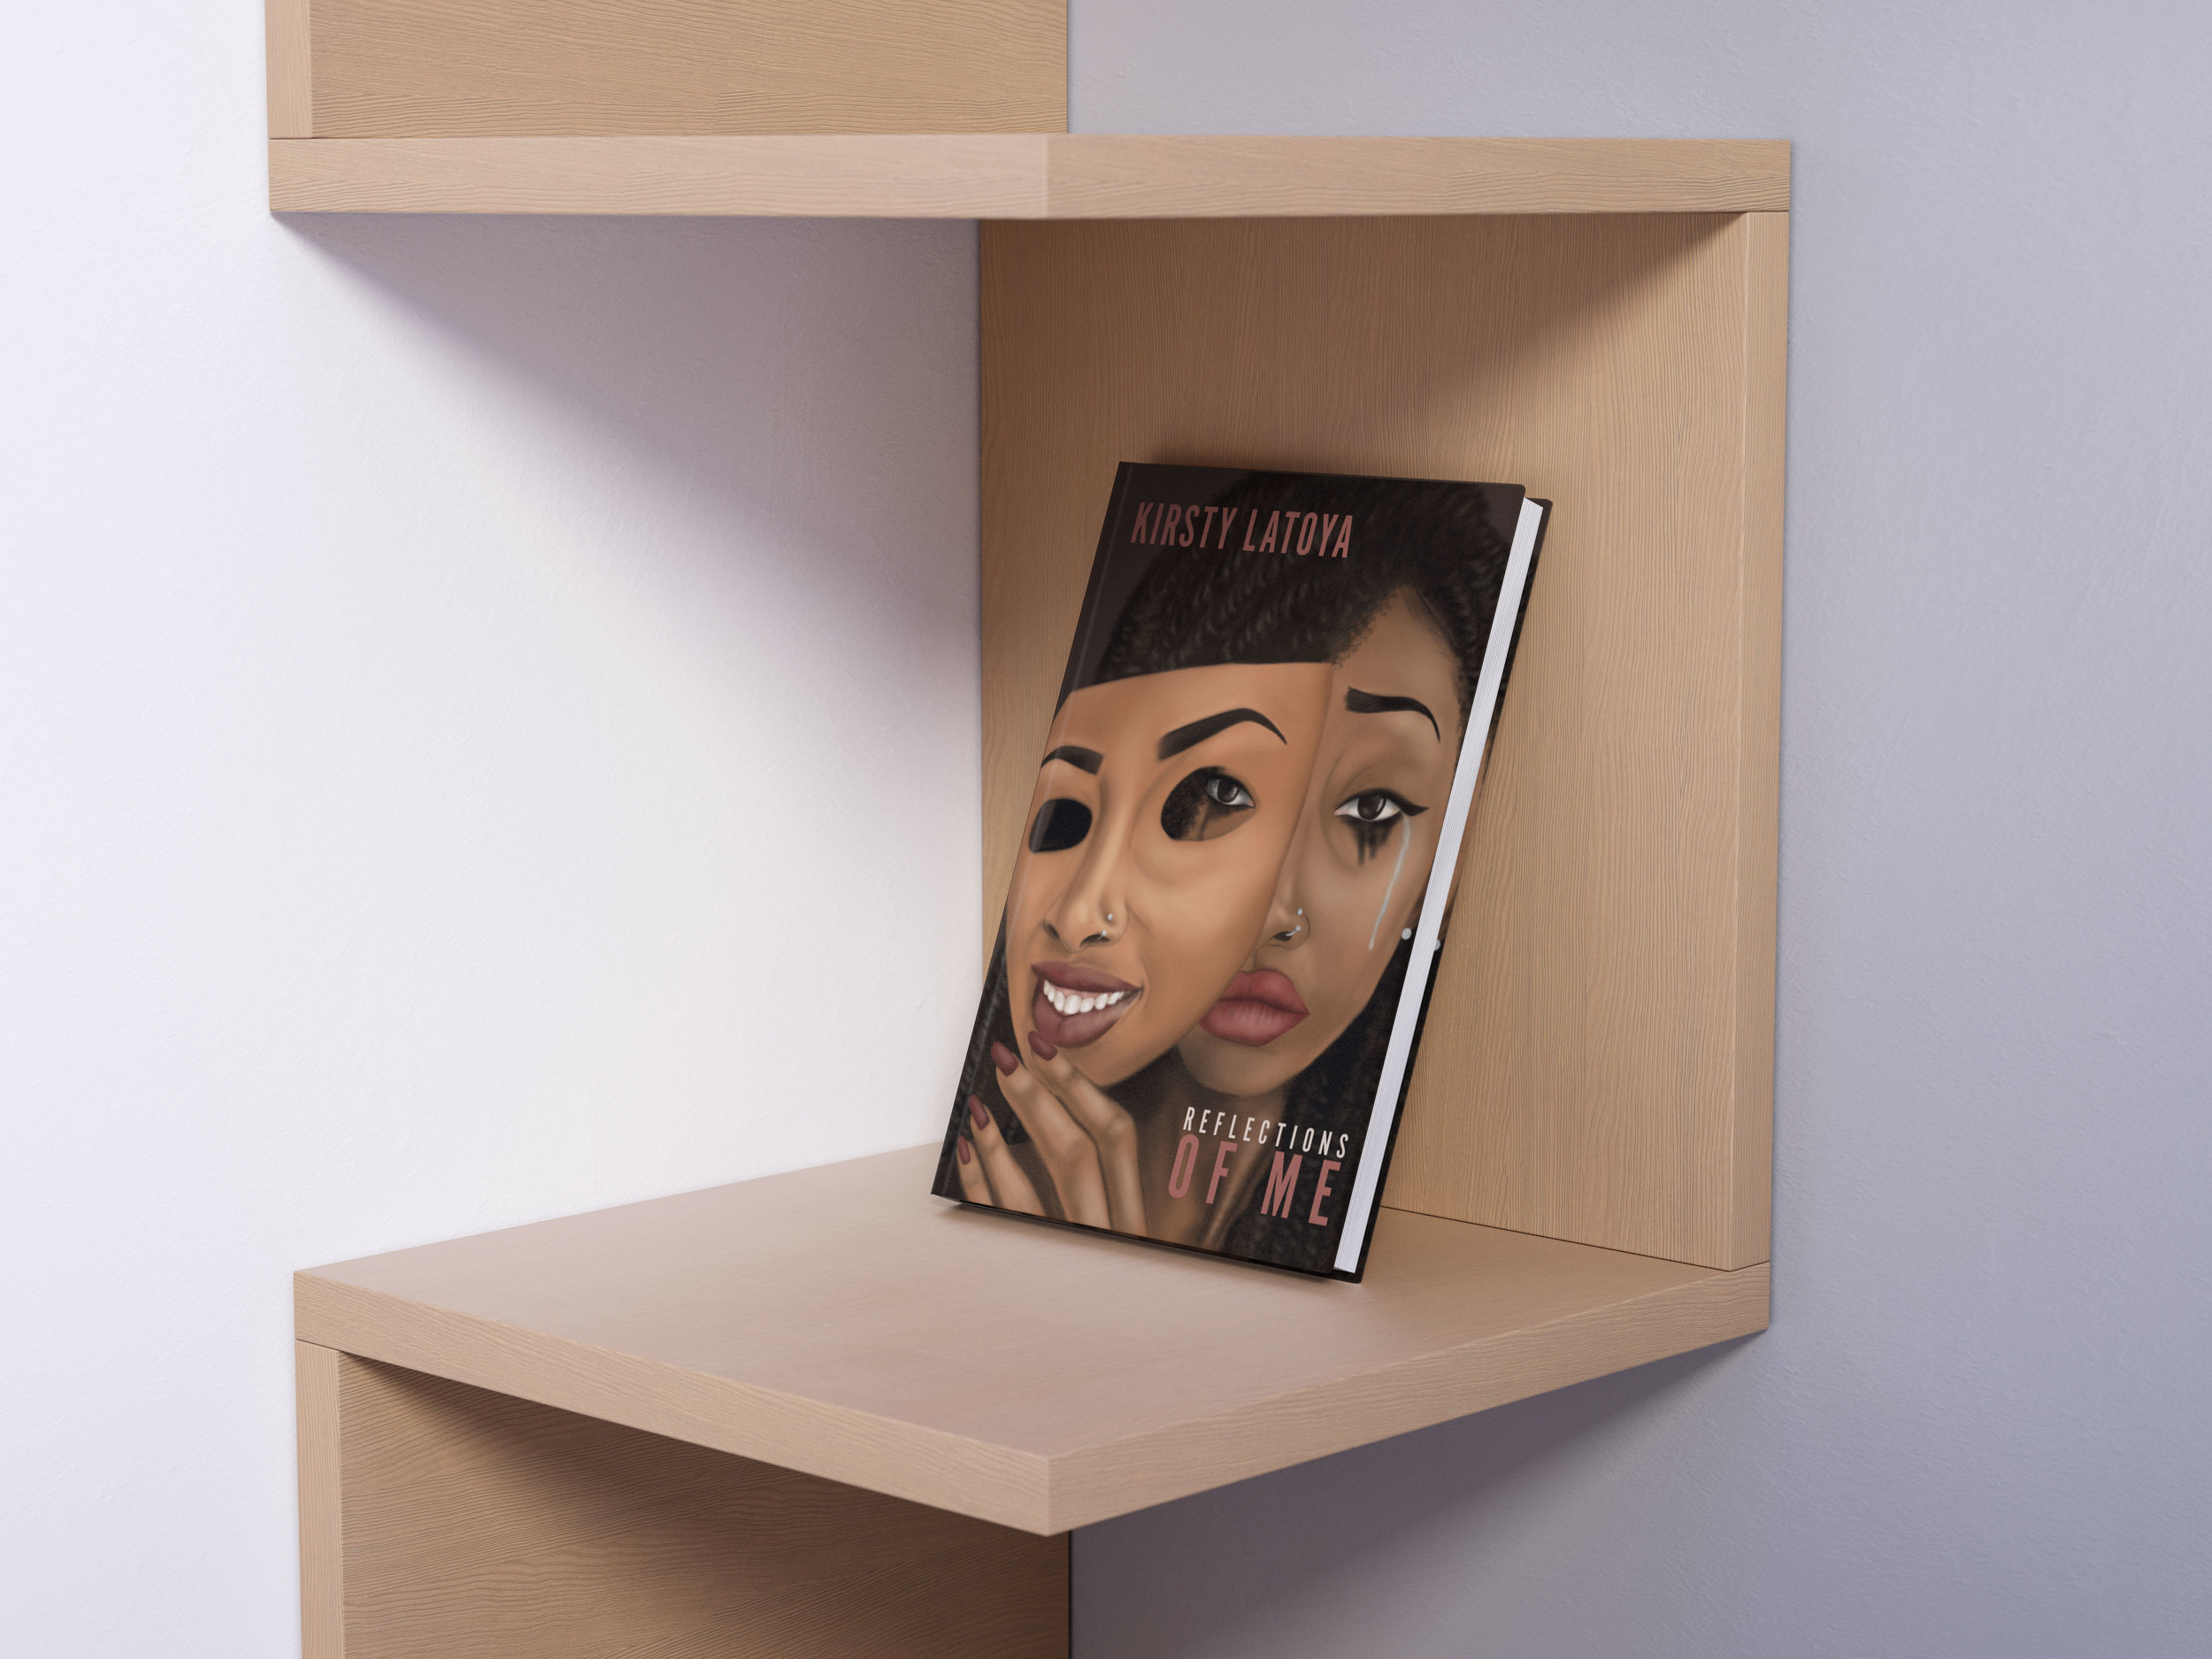 Reflections of Me - Published in 2018, this art and poetry book explores important themes such as mental health, identity, womanhood and masculinity. It conveys emotion through the eye-catching artwork and thought provoking poetry created by Kirsty Latoya.Buy the book HERE on Own It's website